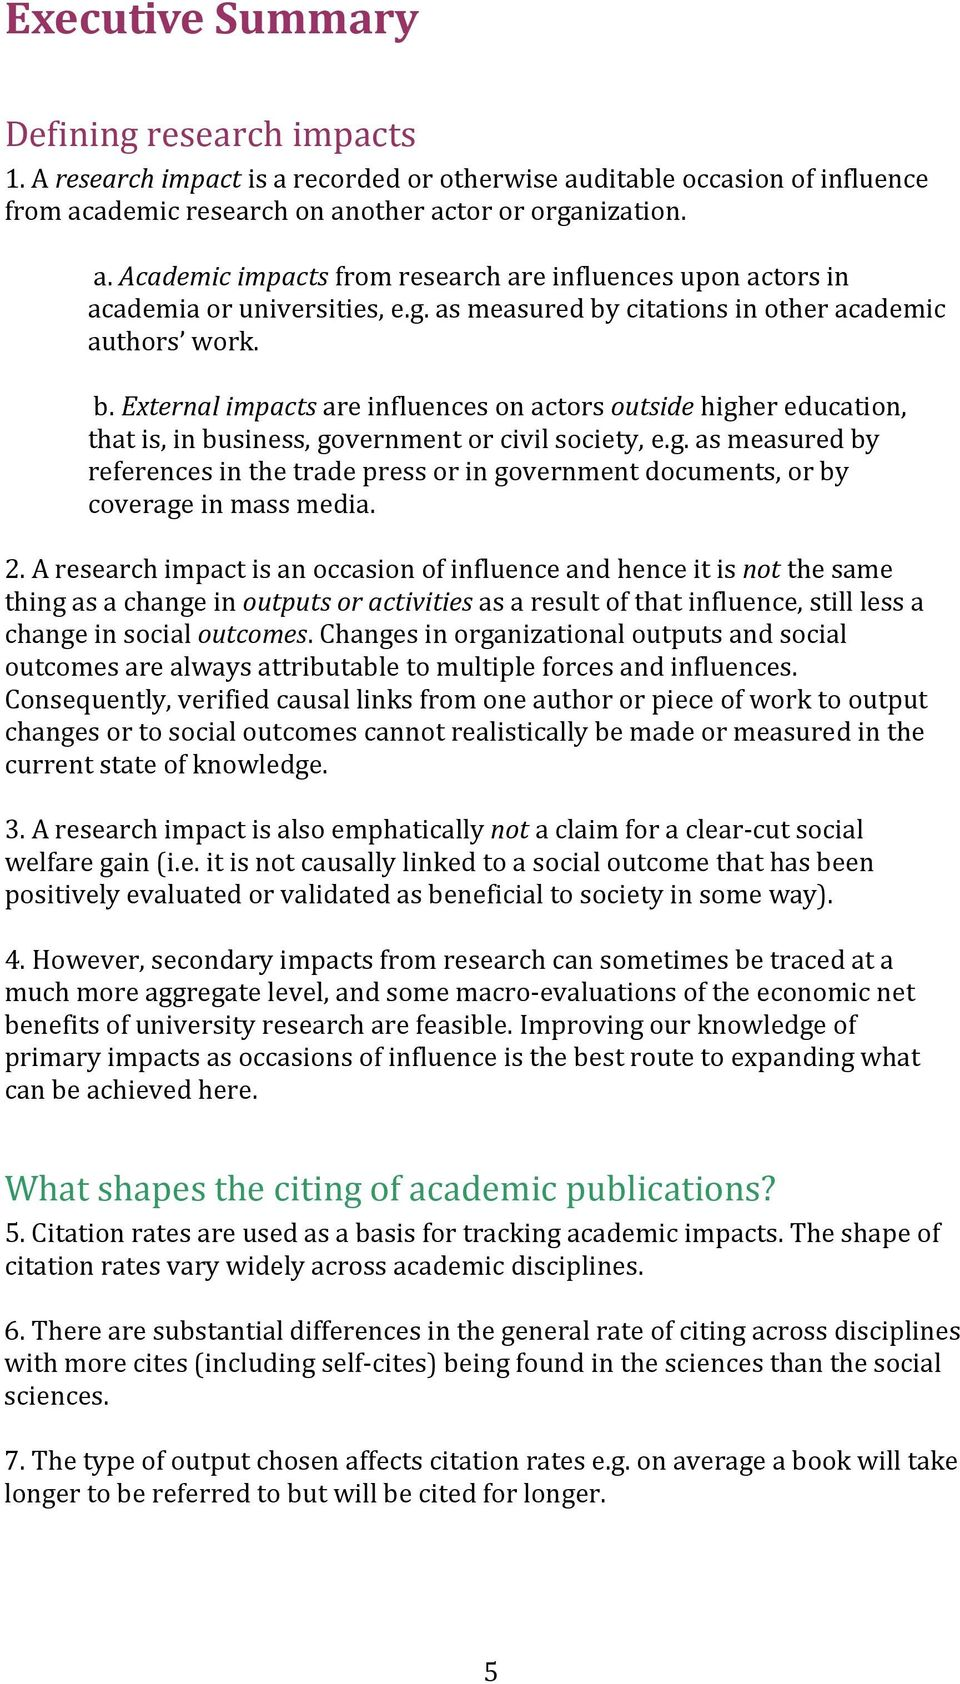 2. A research impact is an occasion of influence and hence it is not the same thing as a change in outputs or activities as a result of that influence, still less a change in social outcomes.